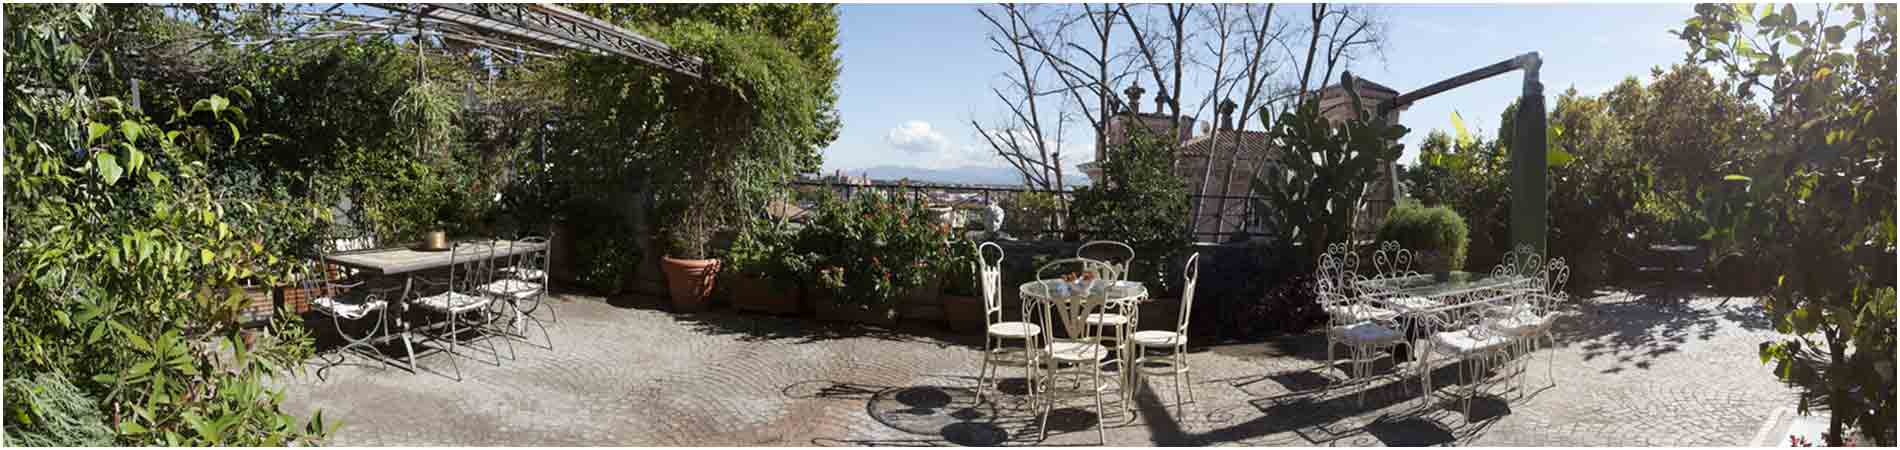 Bed and breakfast Trastevere